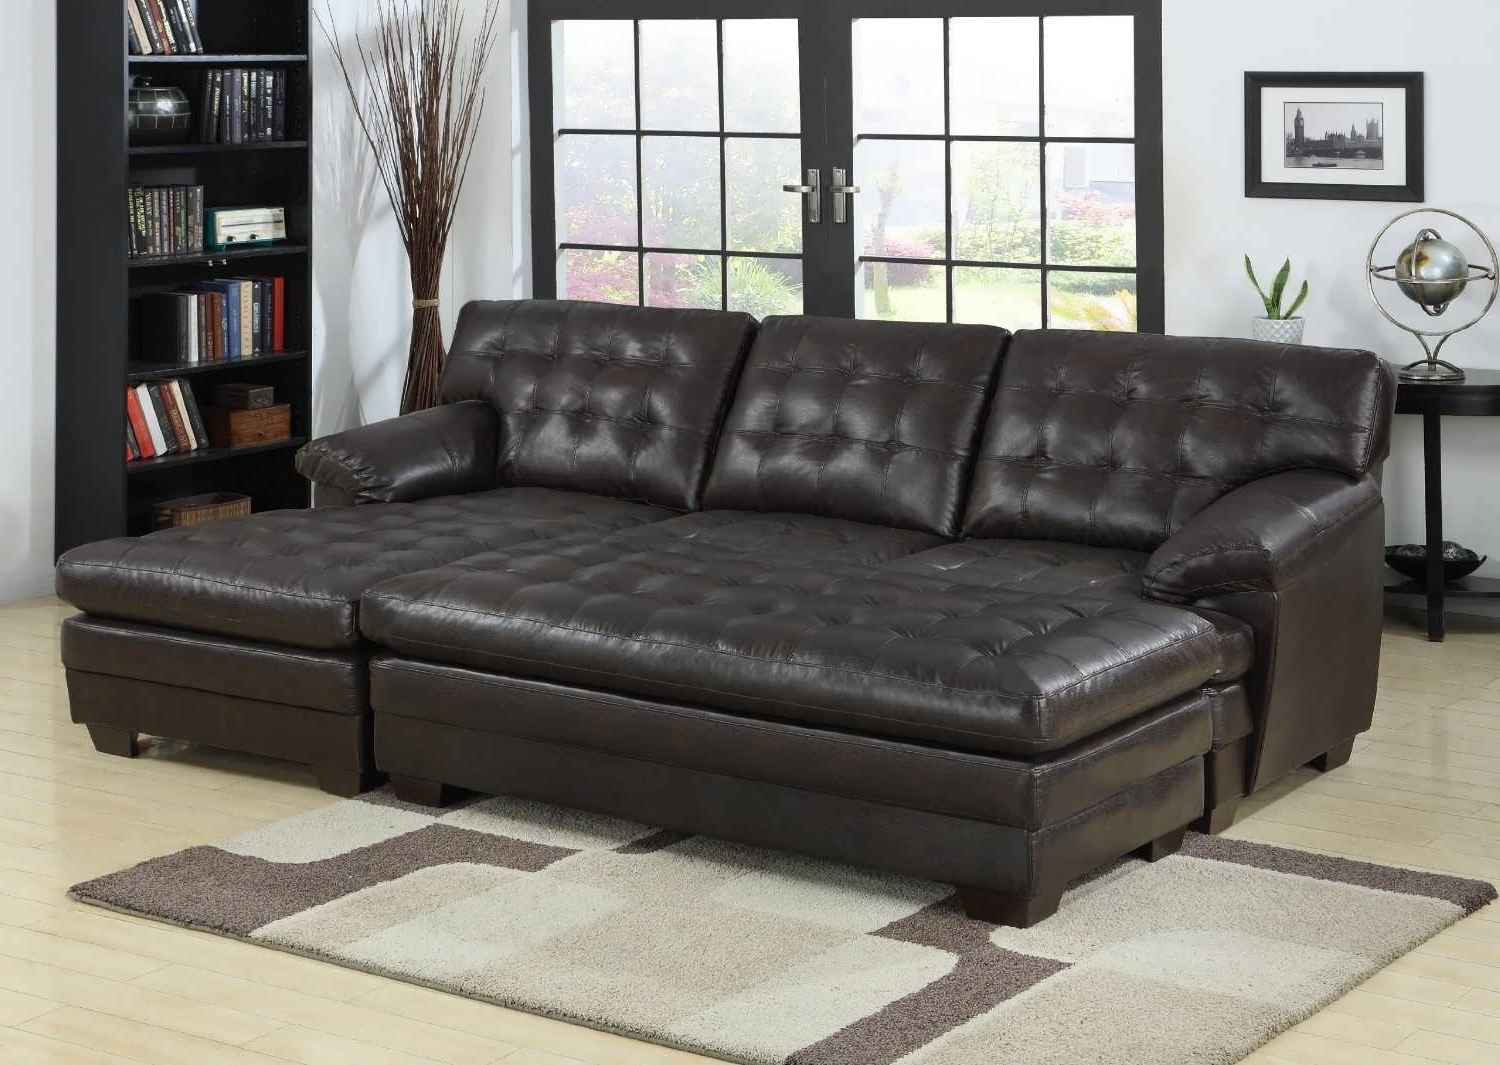 Latest Chaise Lounge Sectionals Within Sofa : Sectional Sofas Big Sectional Couch Wrap Around Couch Best (View 8 of 15)